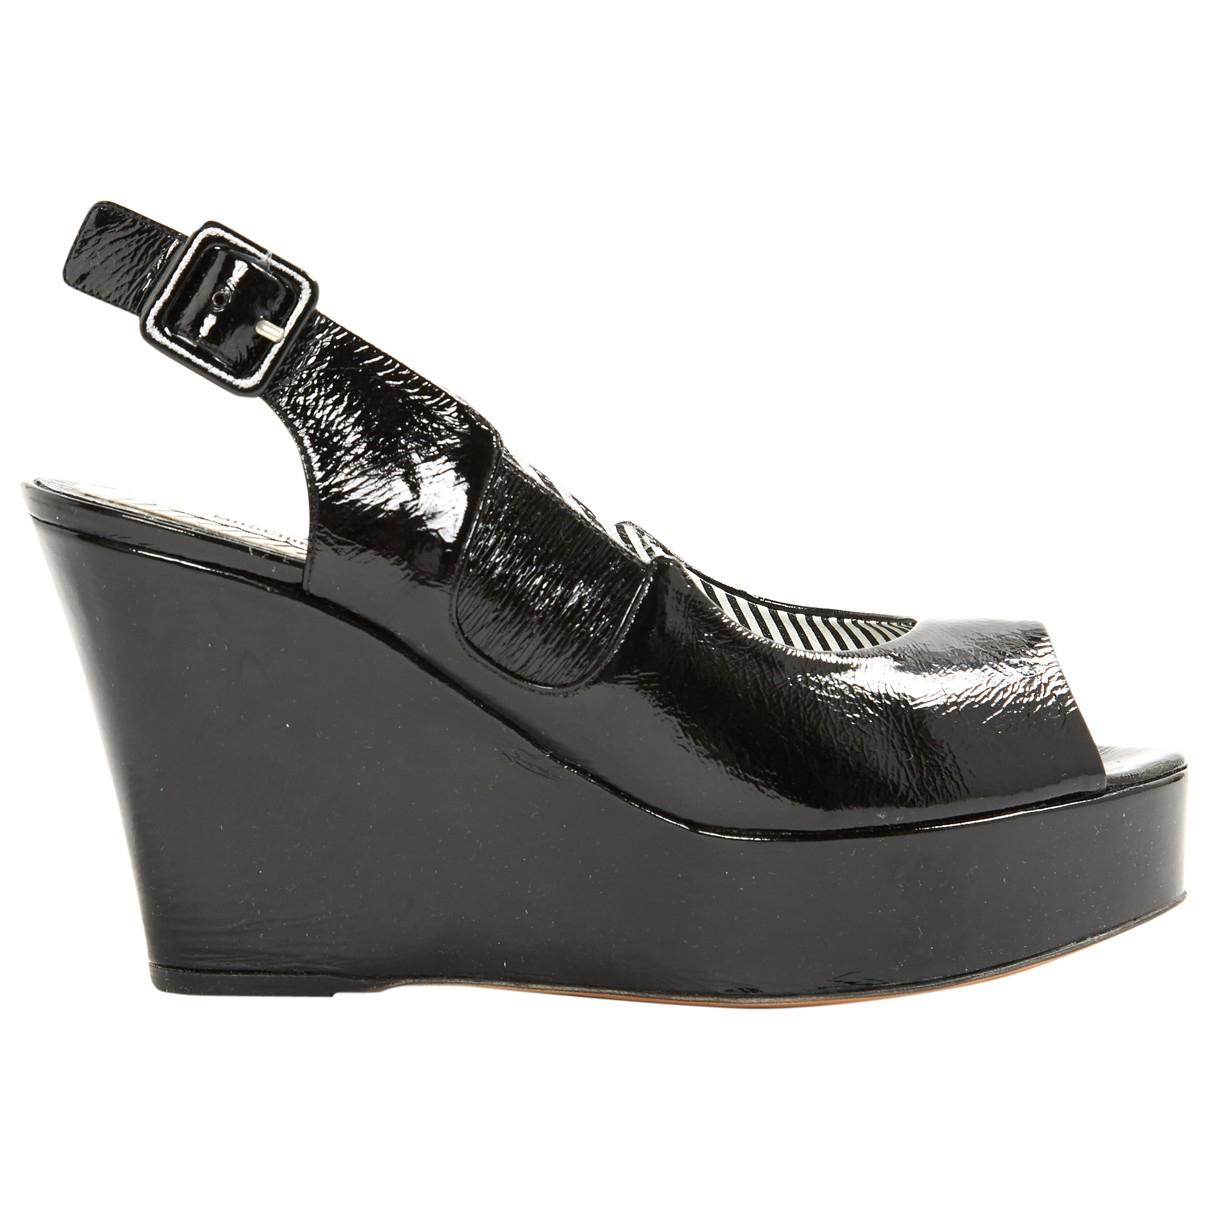 7d02cdd42ff Lyst - Moschino Pre-owned Patent Leather Heels in Black